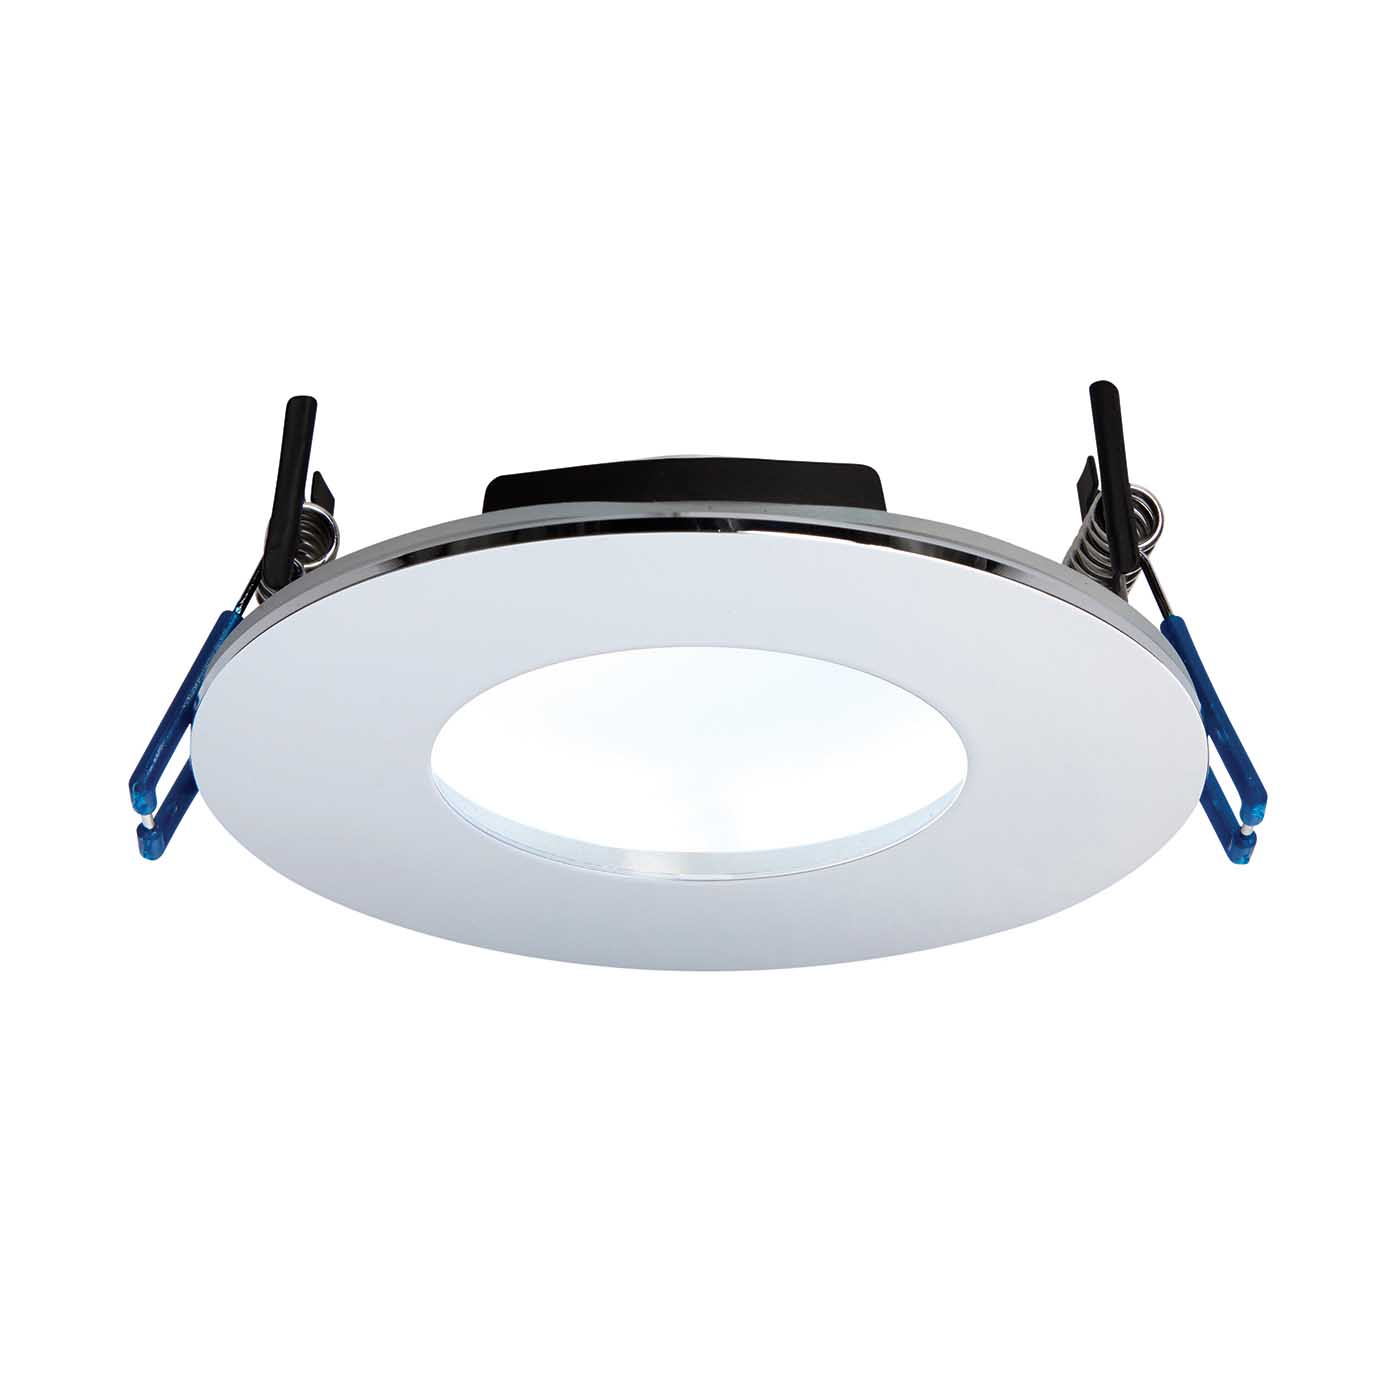 Saxby Orbitalplus Bathroom Recessed Fixed Light Ip65 9w